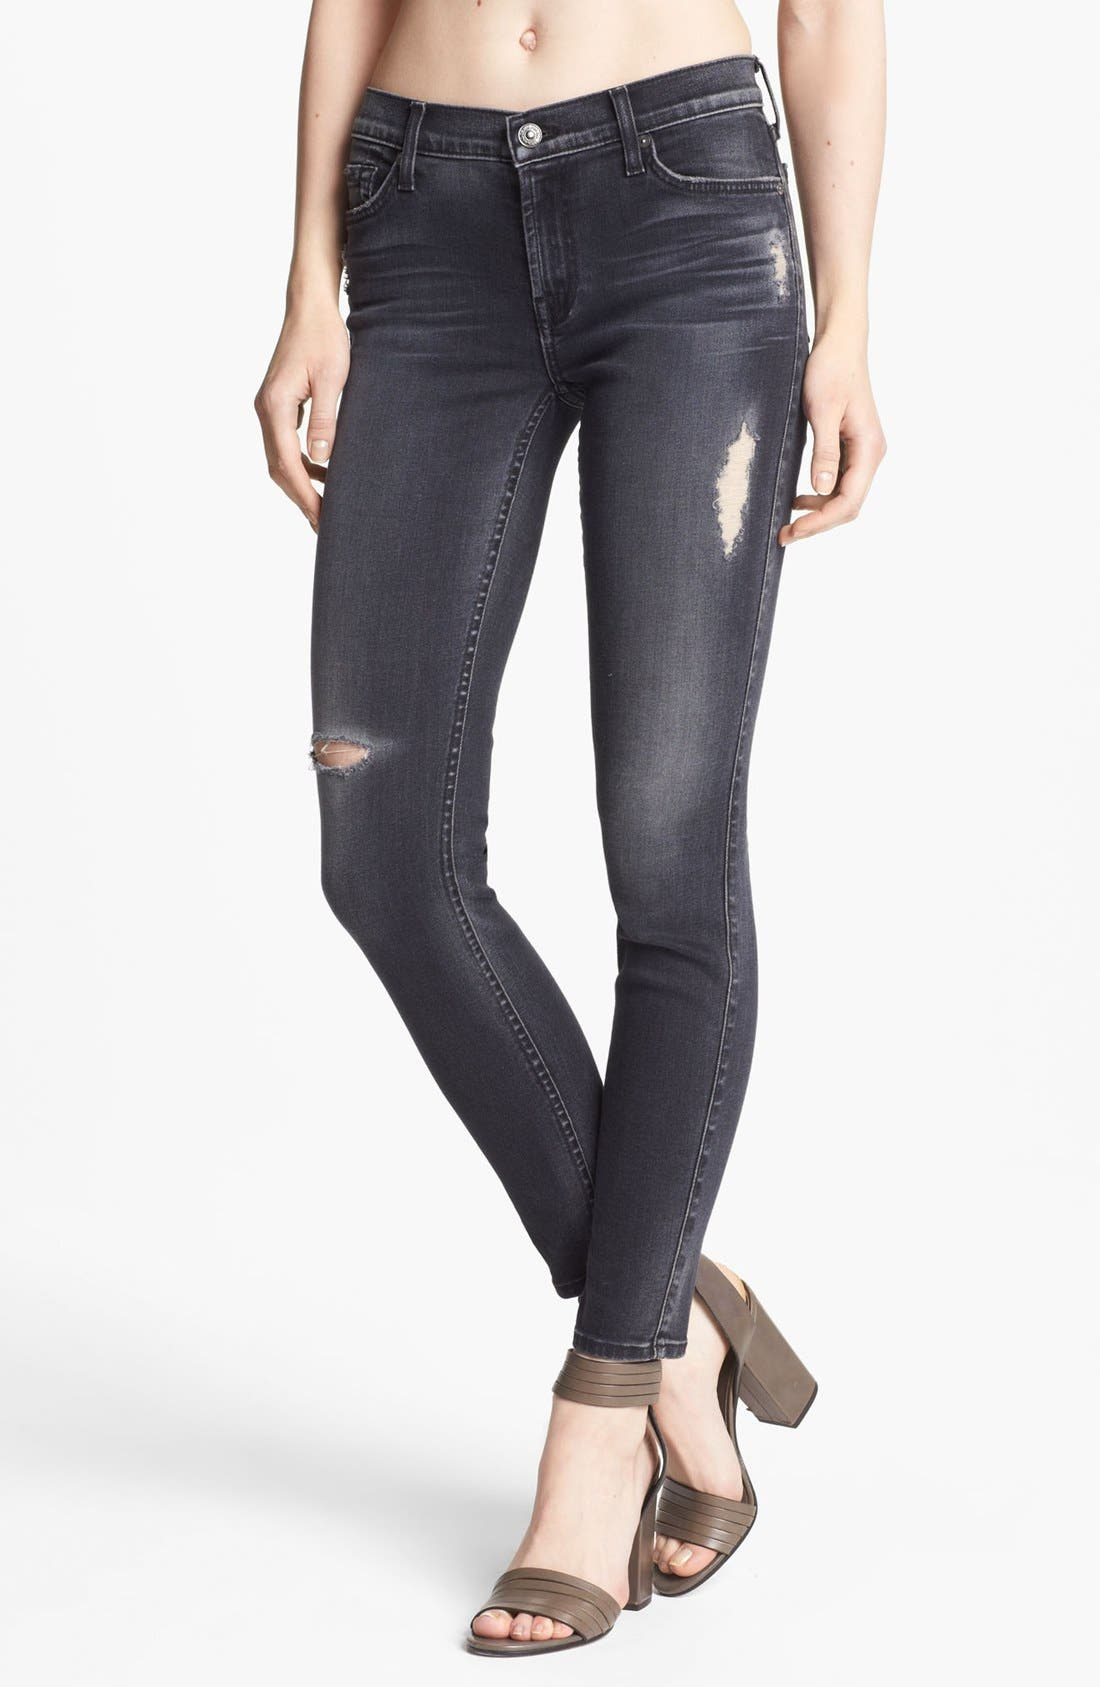 Main Image - 7 For All Mankind® 'The Skinny 29' Stretch Jeans (Blue Black Destroyed)